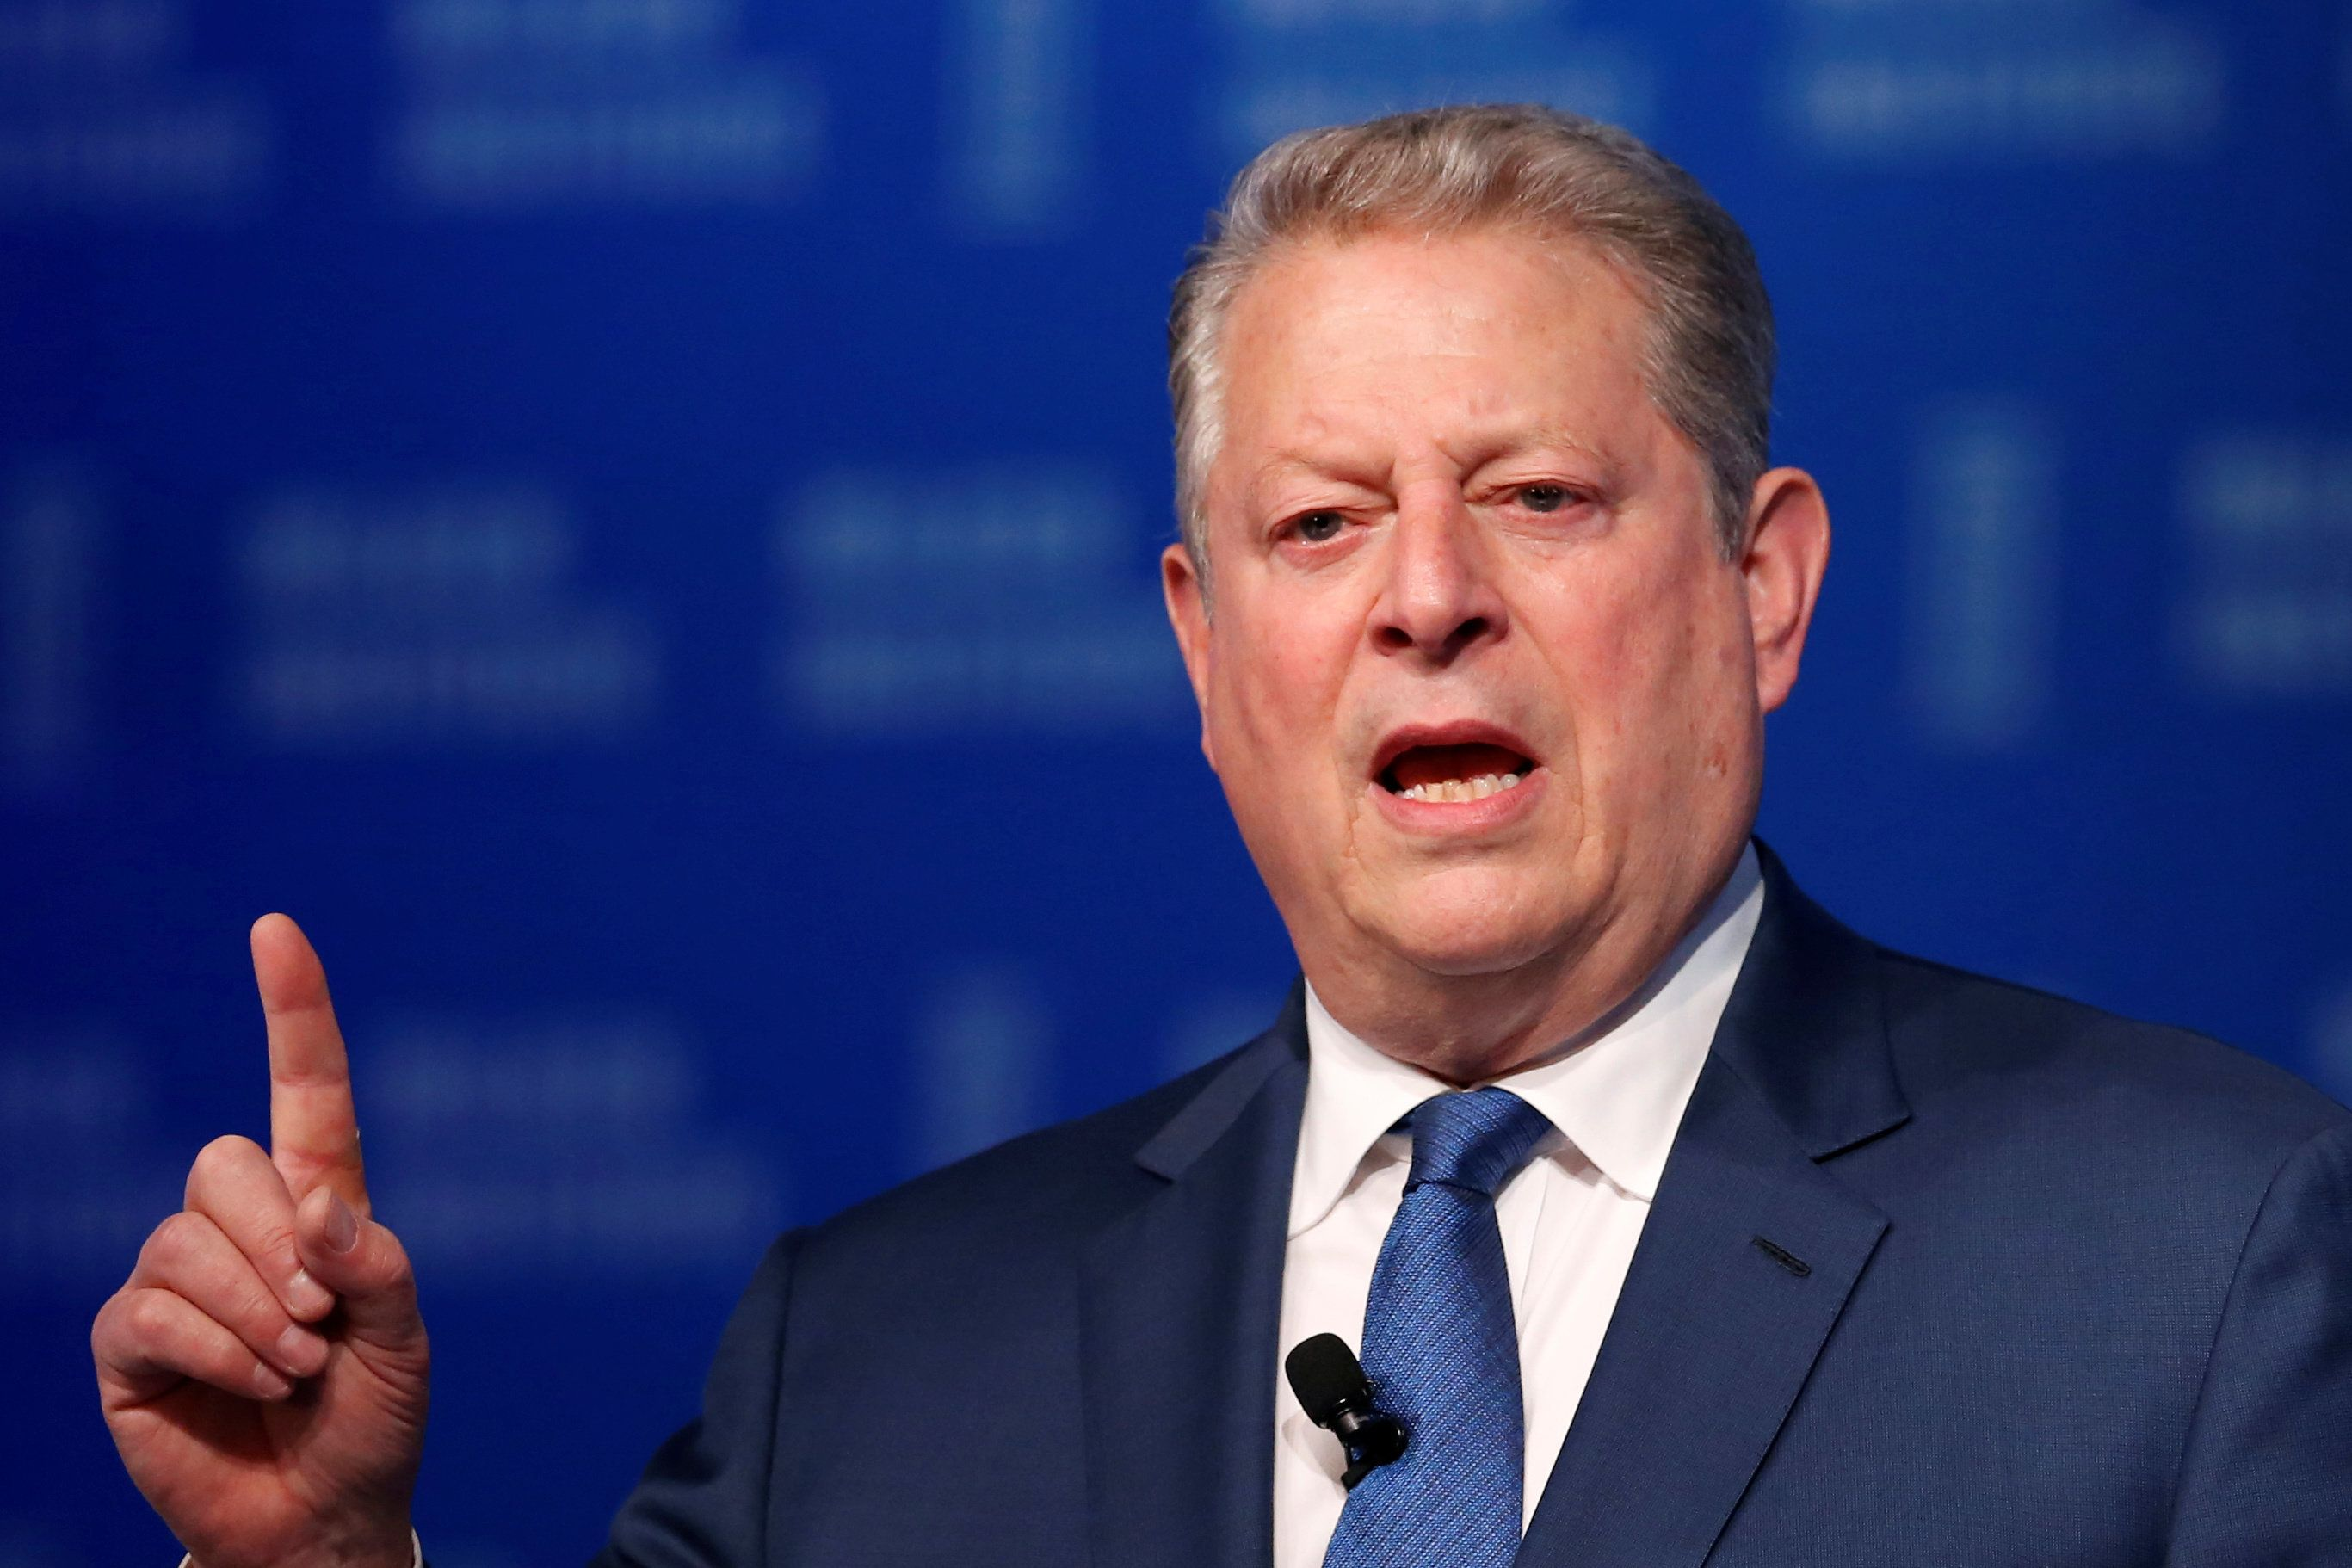 Al Gore, Chairman of Generation Investment Management, speaks at the Milken Institute Global Conference in Beverly Hills, California, U.S., May 2, 2016. REUTERS/Lucy Nicholson